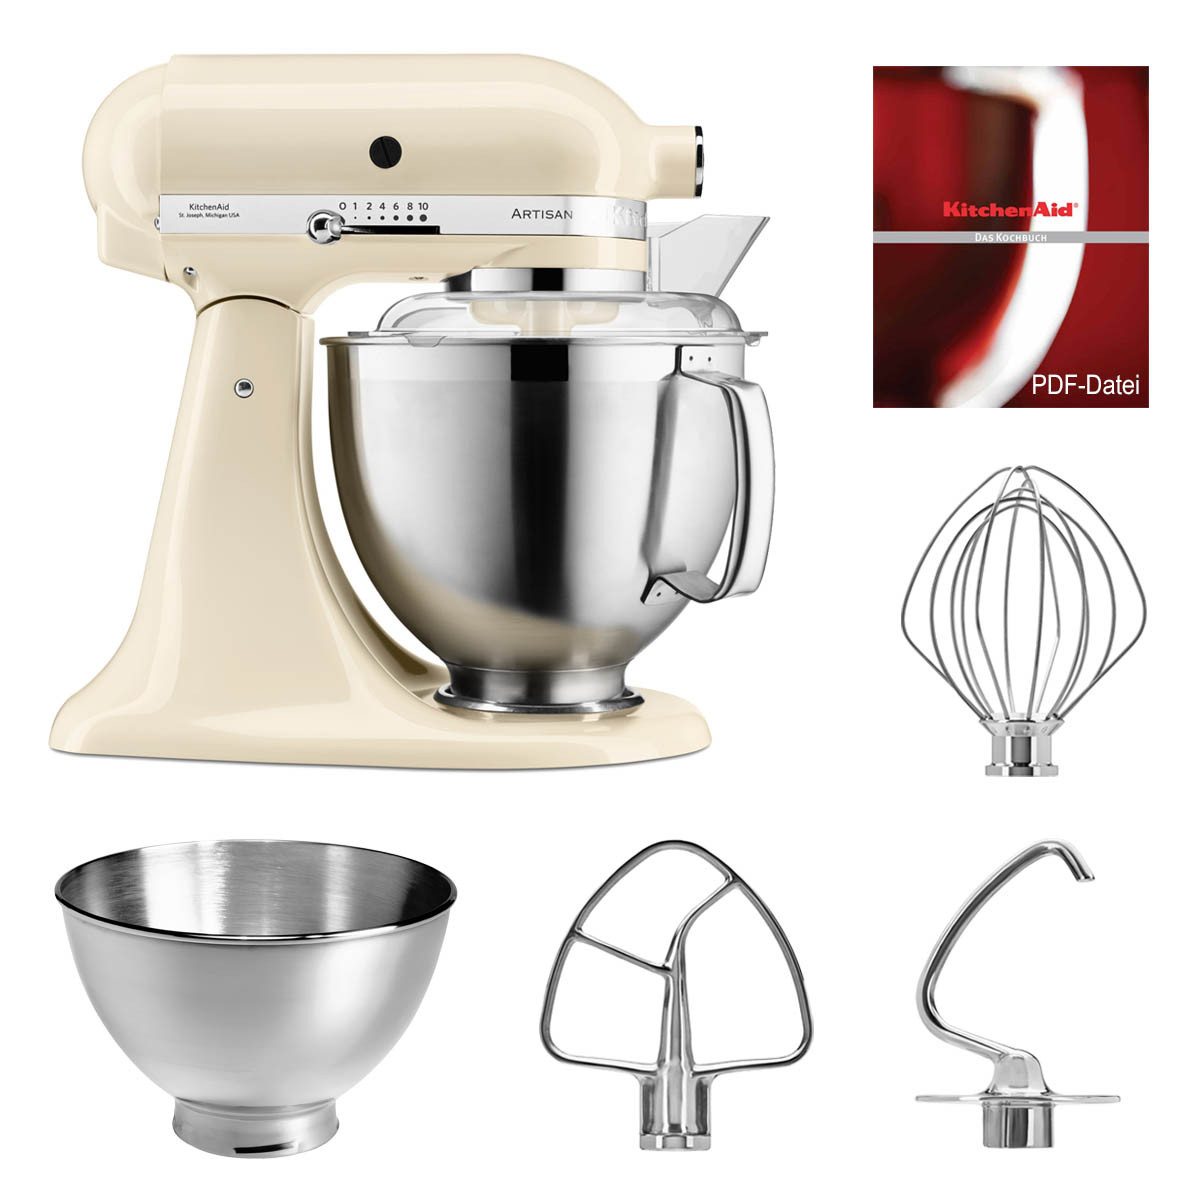 kitchenaid waffeleisen creme kitchenaid waffeleisen 5kwb110 cr me thomas electronic online shop. Black Bedroom Furniture Sets. Home Design Ideas